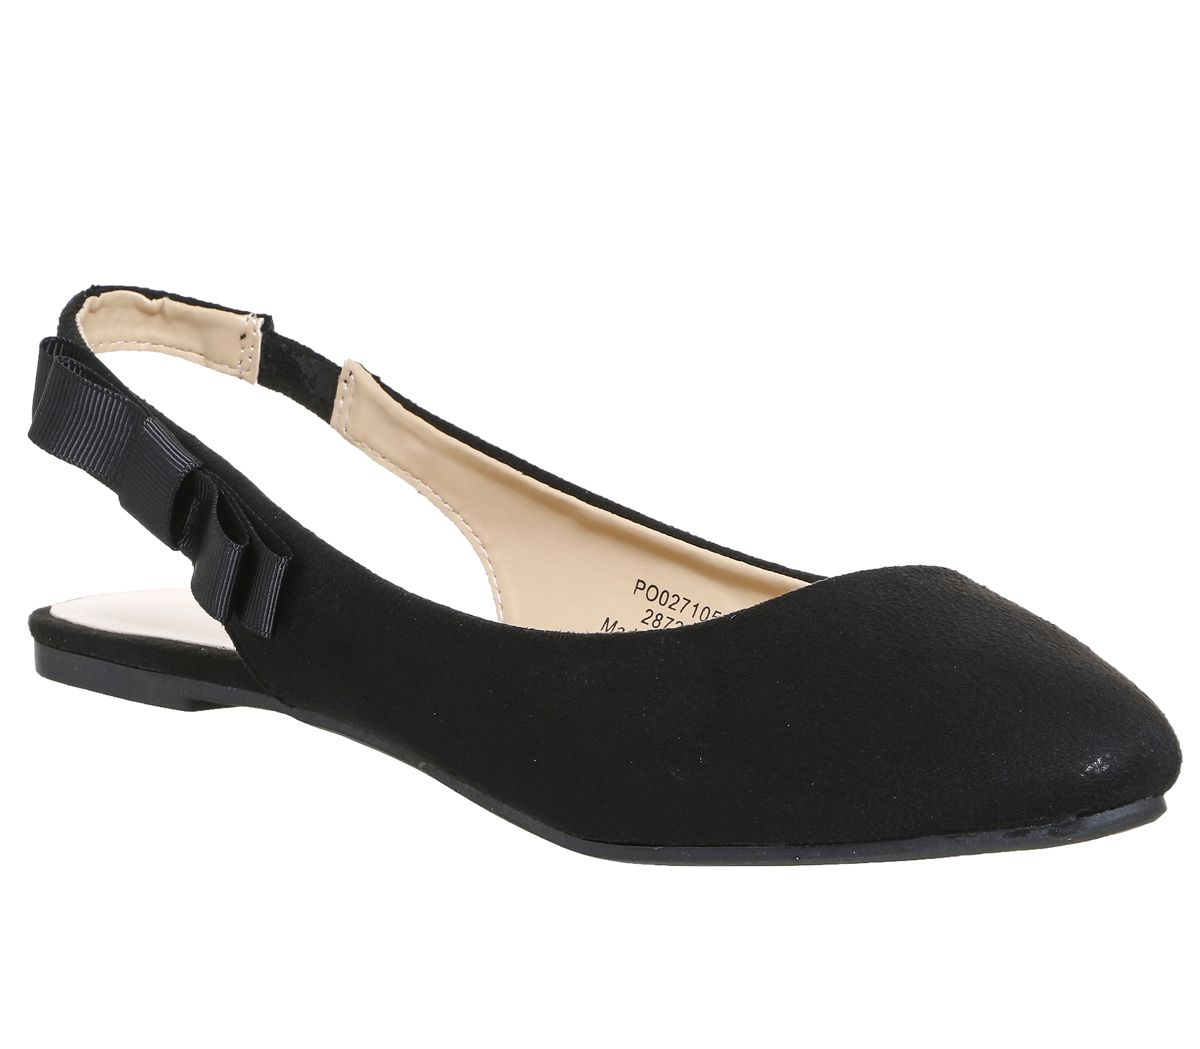 Office Frappe Slingback Bow Flats, Black